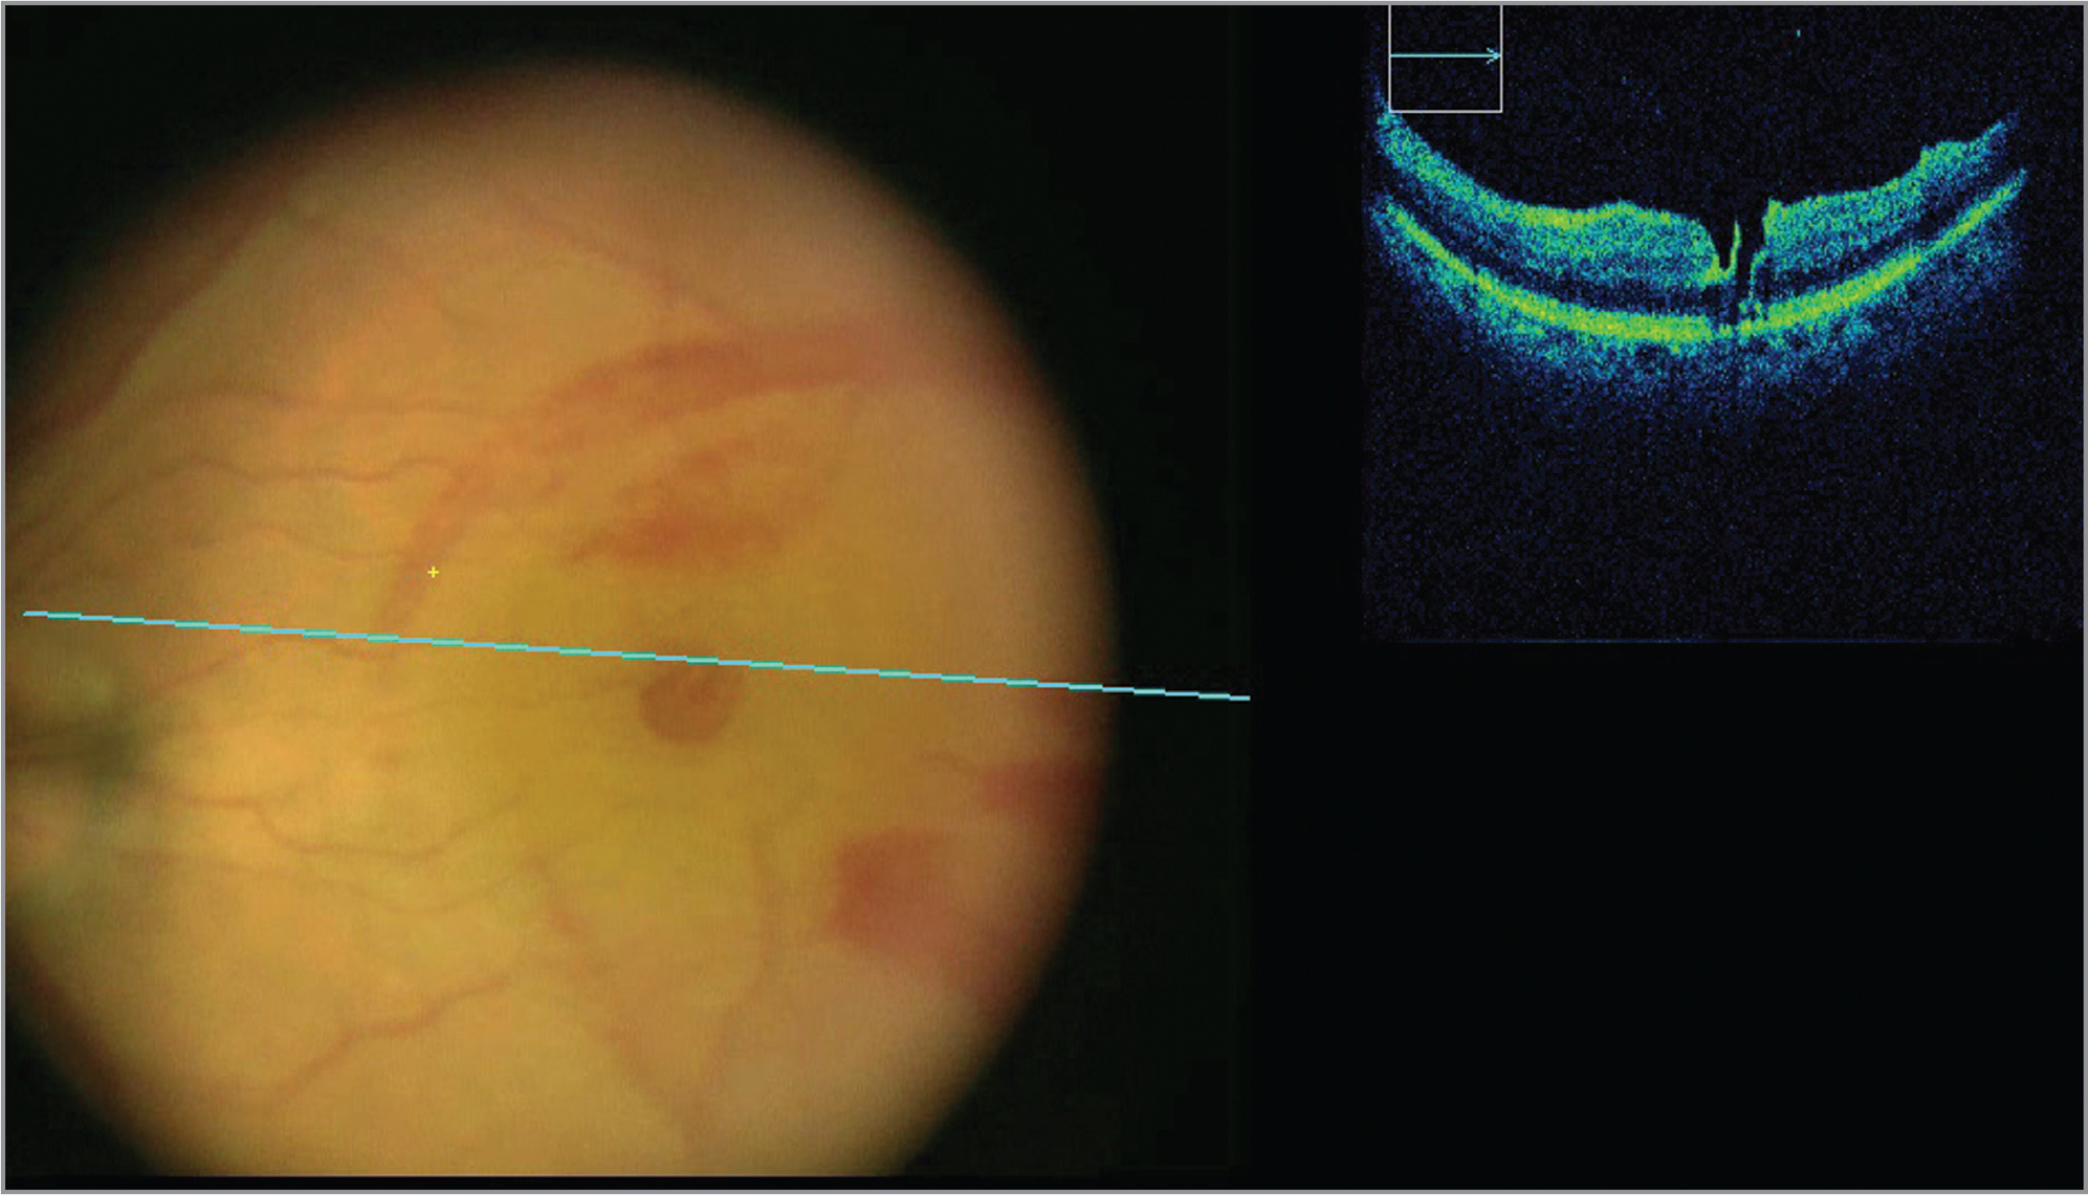 Intraoperative optical coherence tomography from surgeon's view demonstrating full-thickness macular hole.